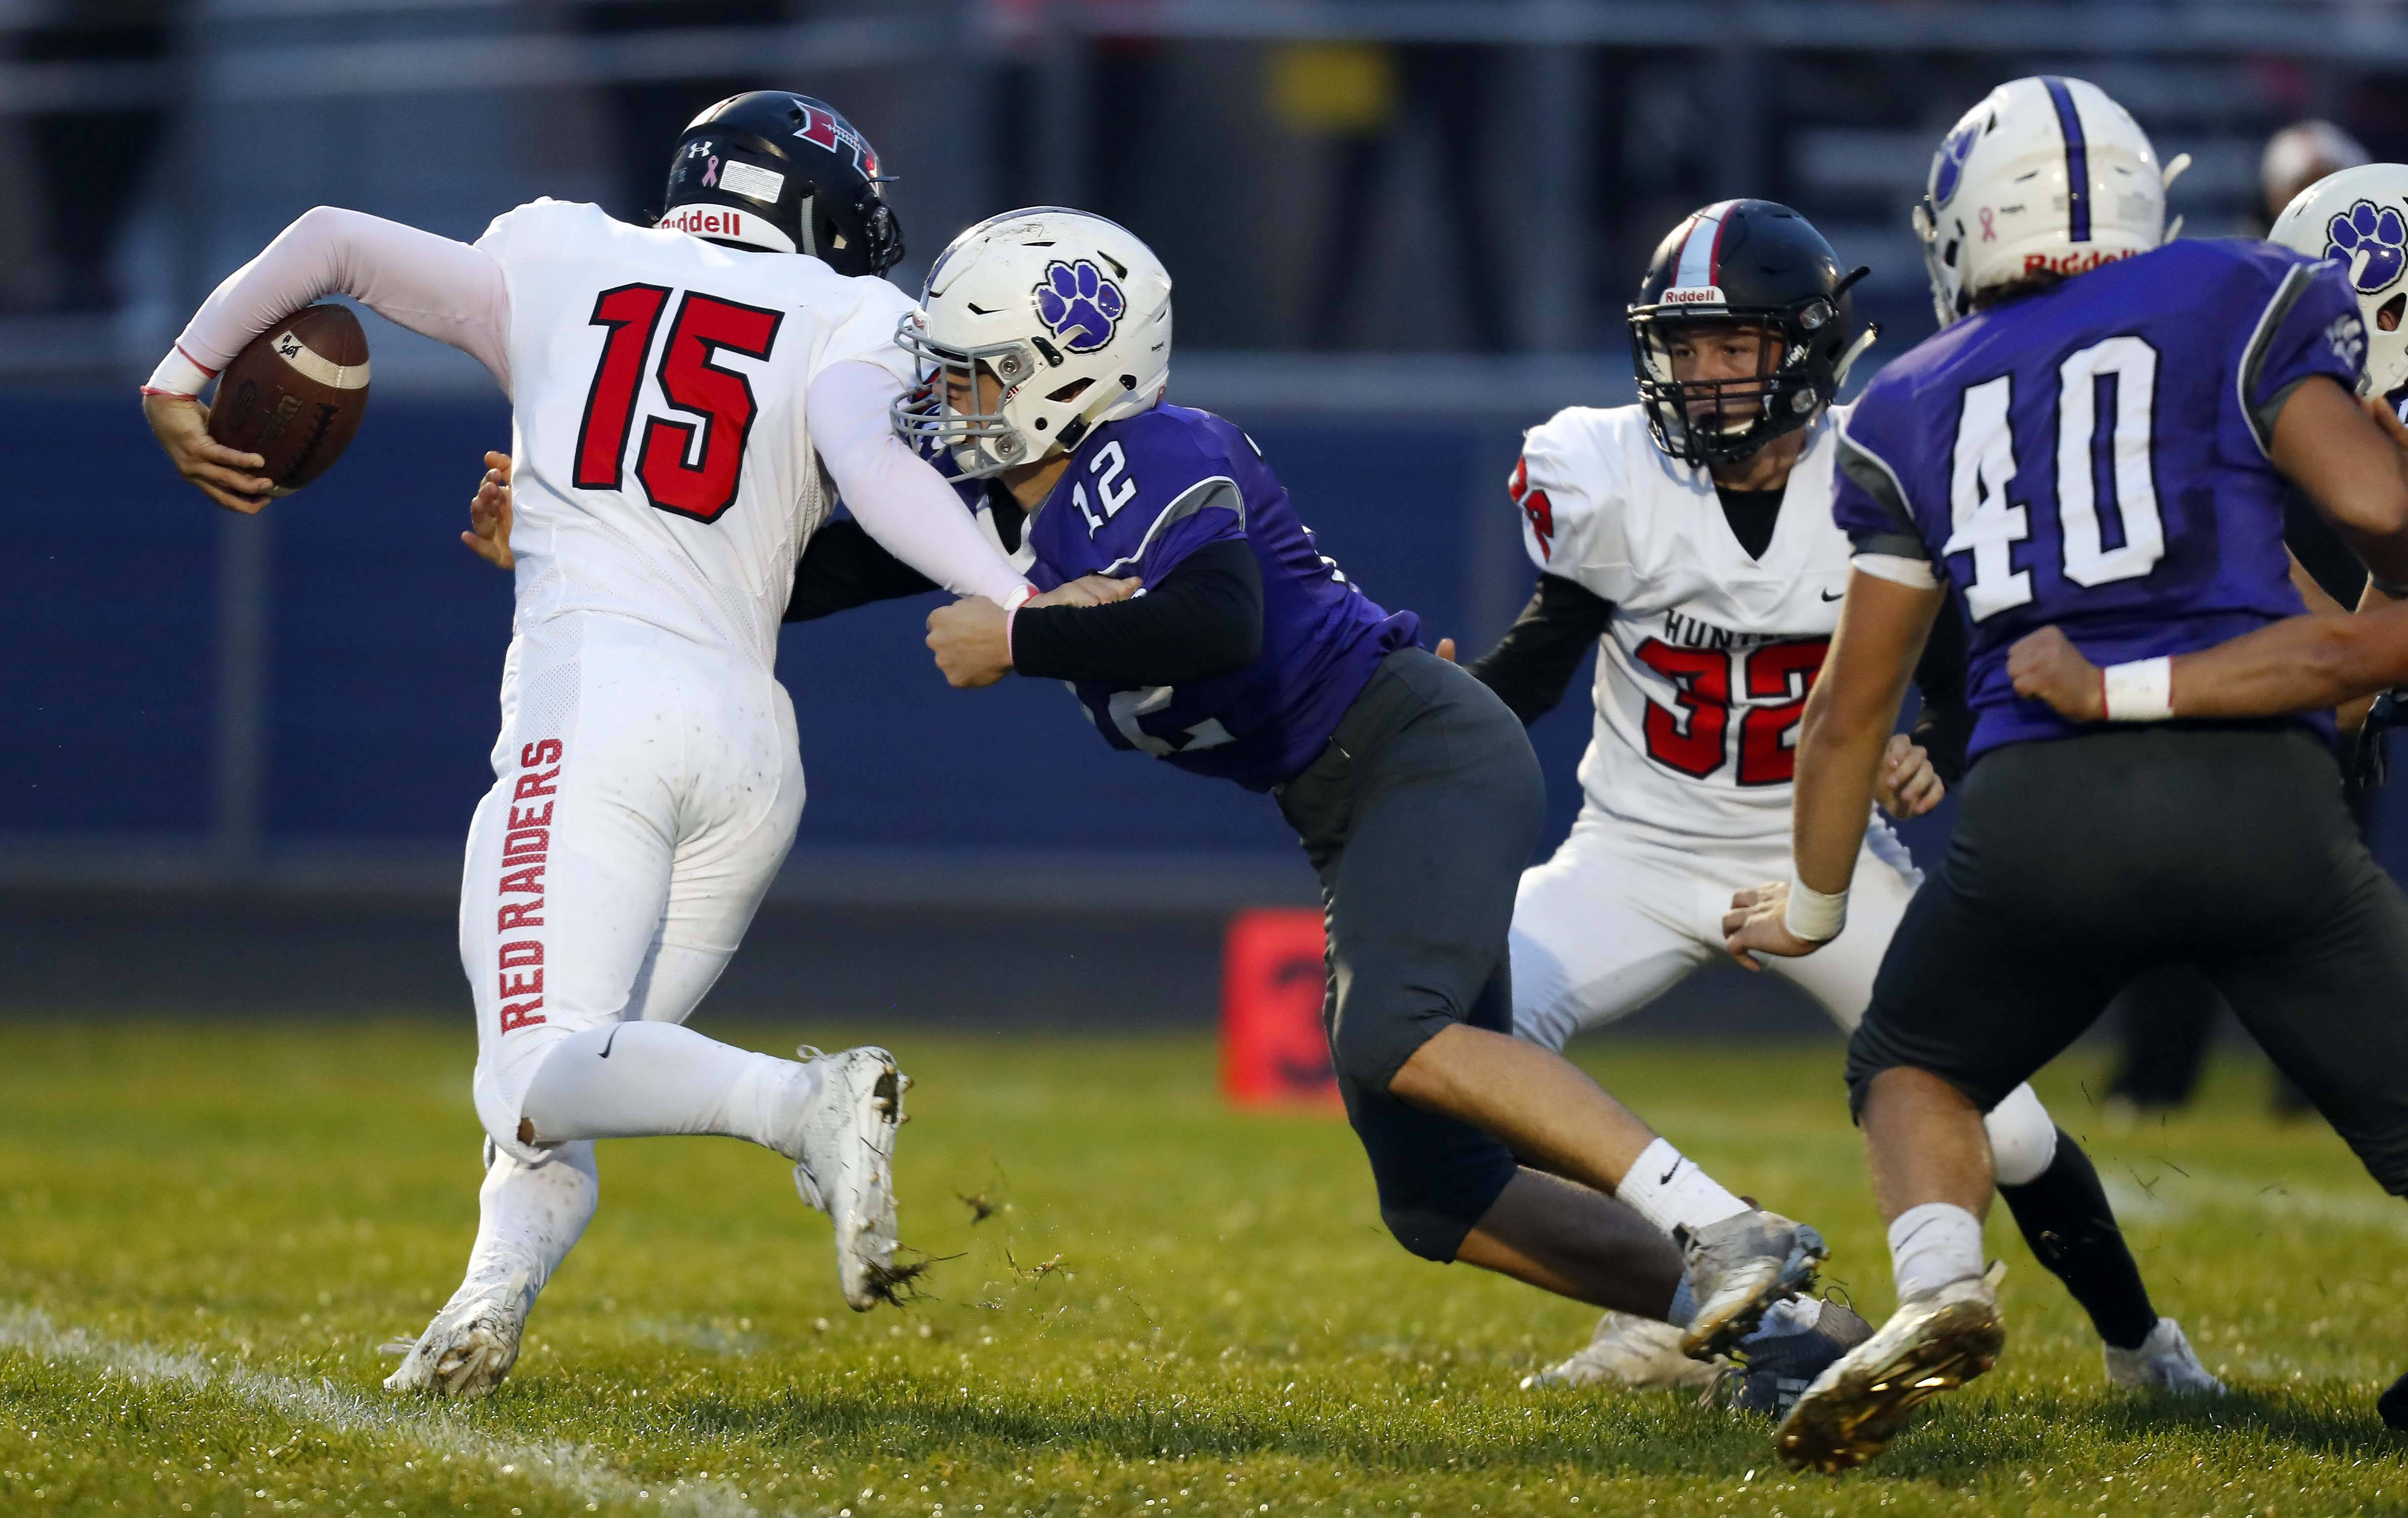 Hampshire's John Brady Young (12) pressures Huntley's Michael Boland (15) Friday during football in Hampshire.